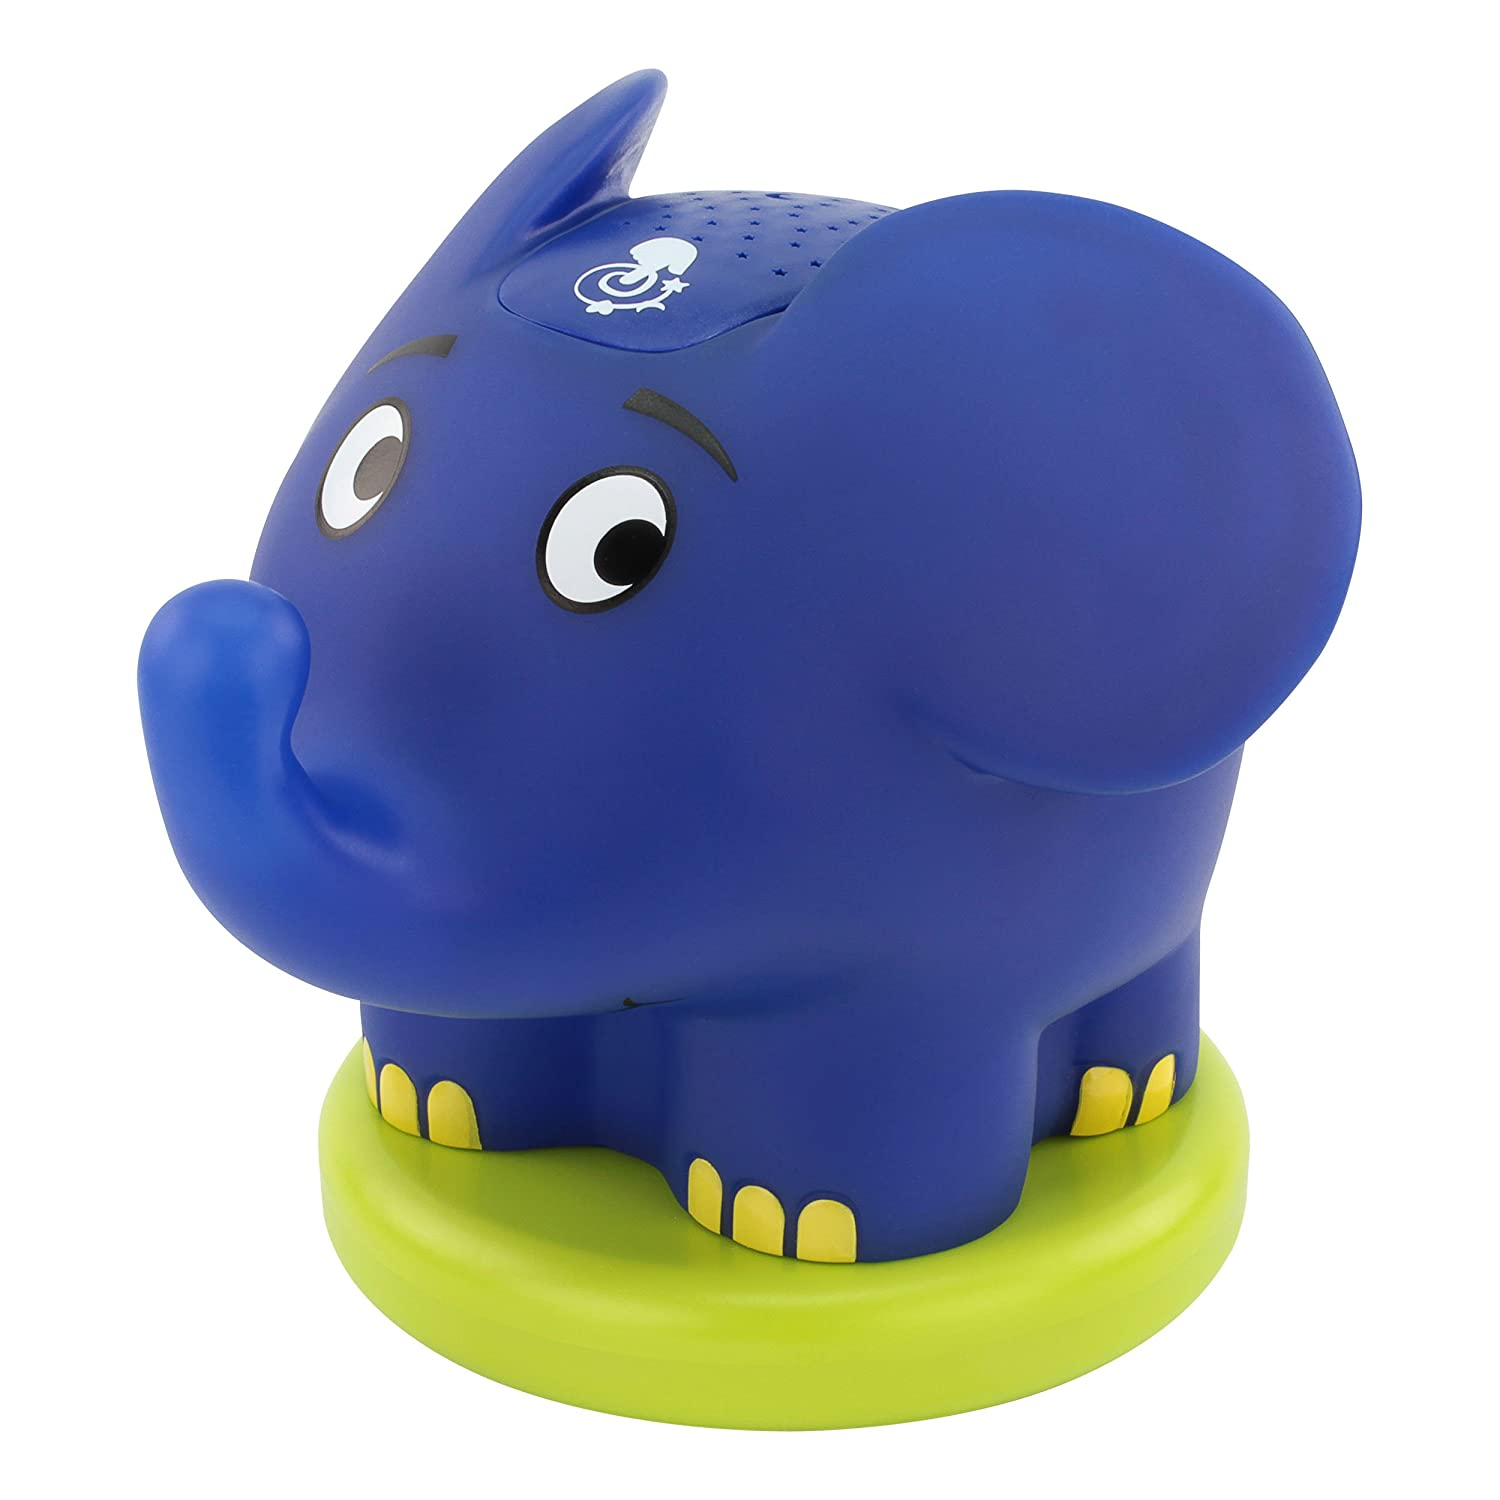 ANSMANN Starlight Elephant & Hare LED Night Light Star Projector Sleeping Aids for Children Babies Mood Light Energy Saving Orientation Light Automatic Colour Change, Plastic, Green 1800-0068